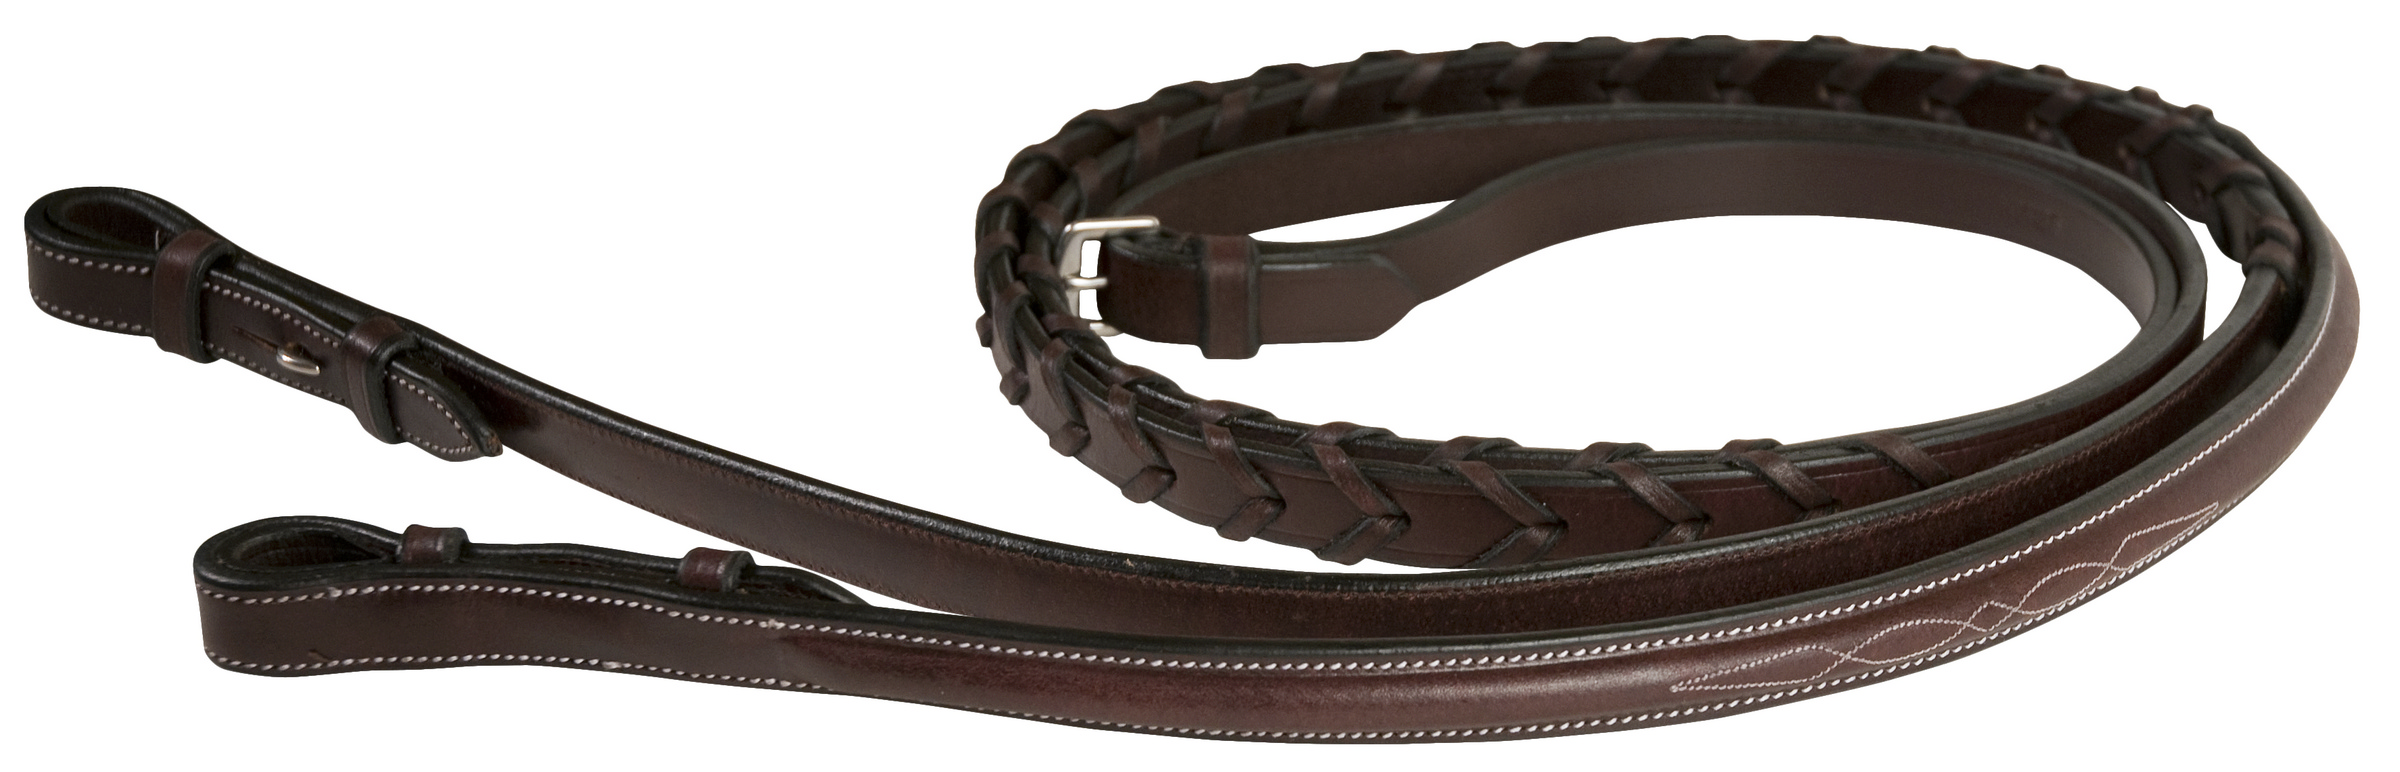 Gatsby Fancy Raised Laced Reins